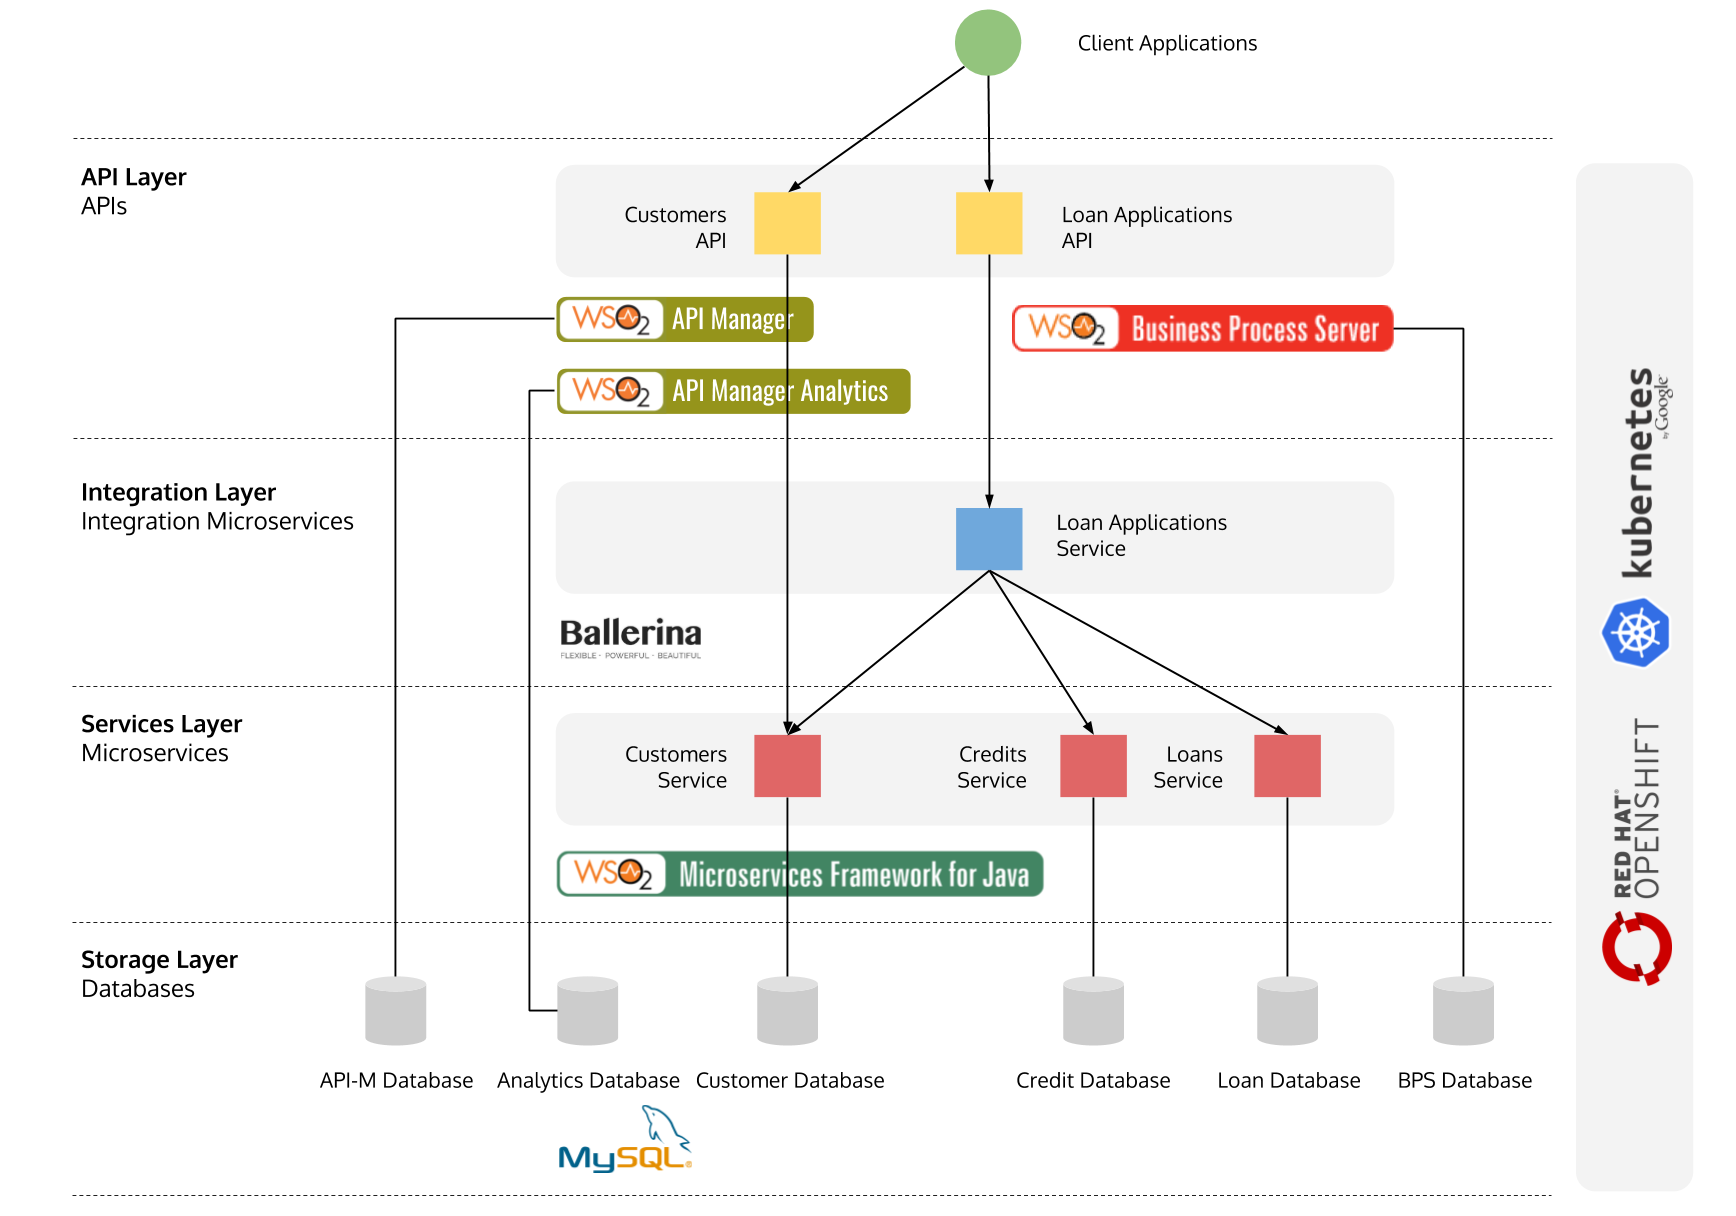 Wiring Microservices Integration Apis Maintainer Diagram The Above Illustrates Solution Architecture Of This Poc Implements A Loan Applications Service For An Imaginary